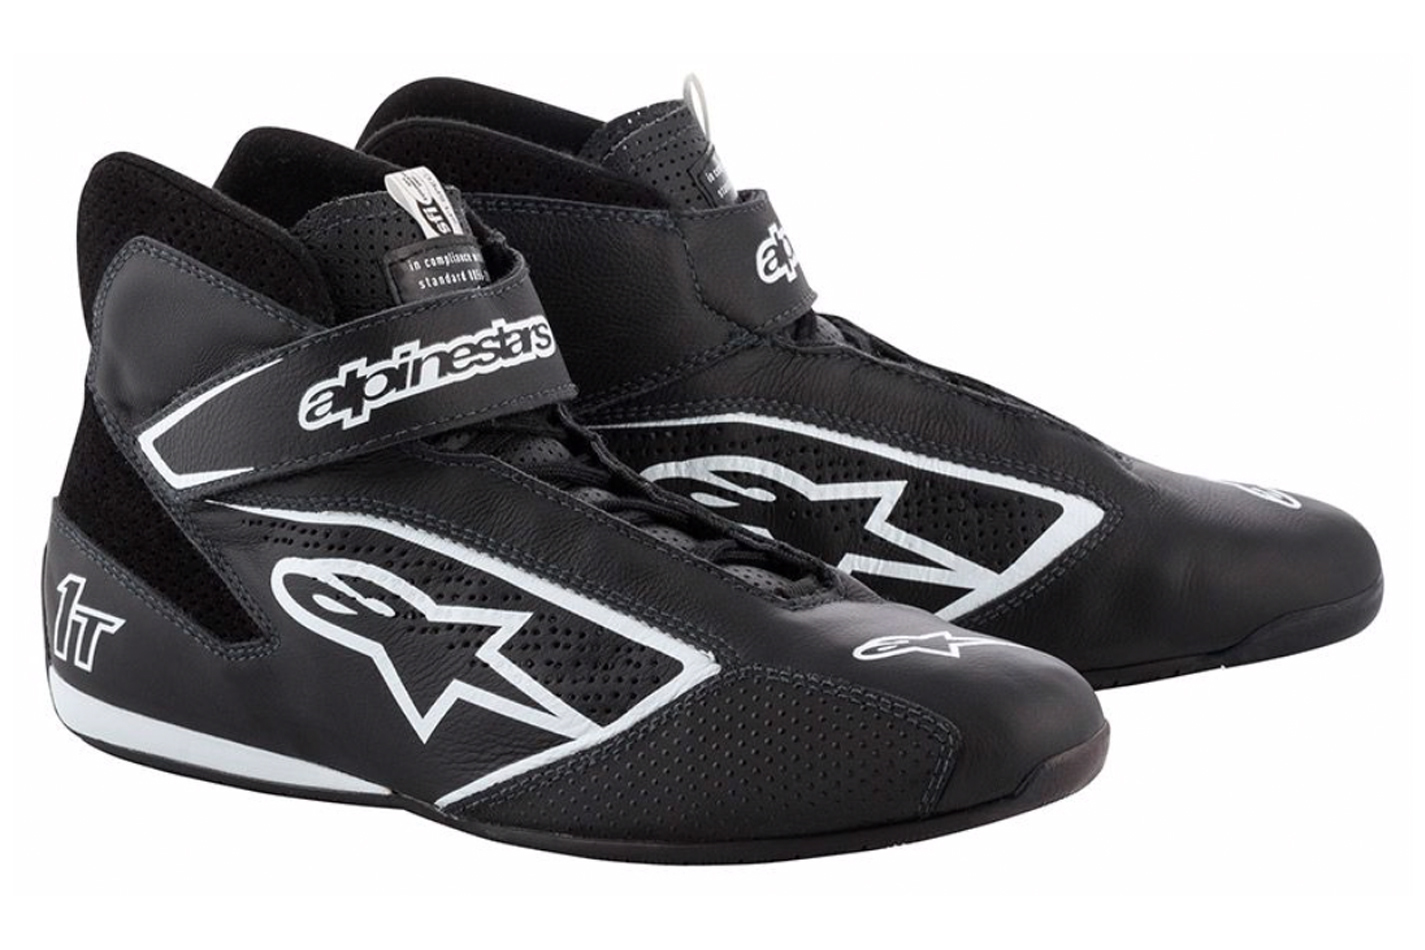 Alpinestars USA 2710119-12B-8 Shoe, Tech 1-T, Driving, Mid-Top, SFI 3.3, FIA Approved, Leather Outer, Nomex Inner, Black, Size 8, Pair